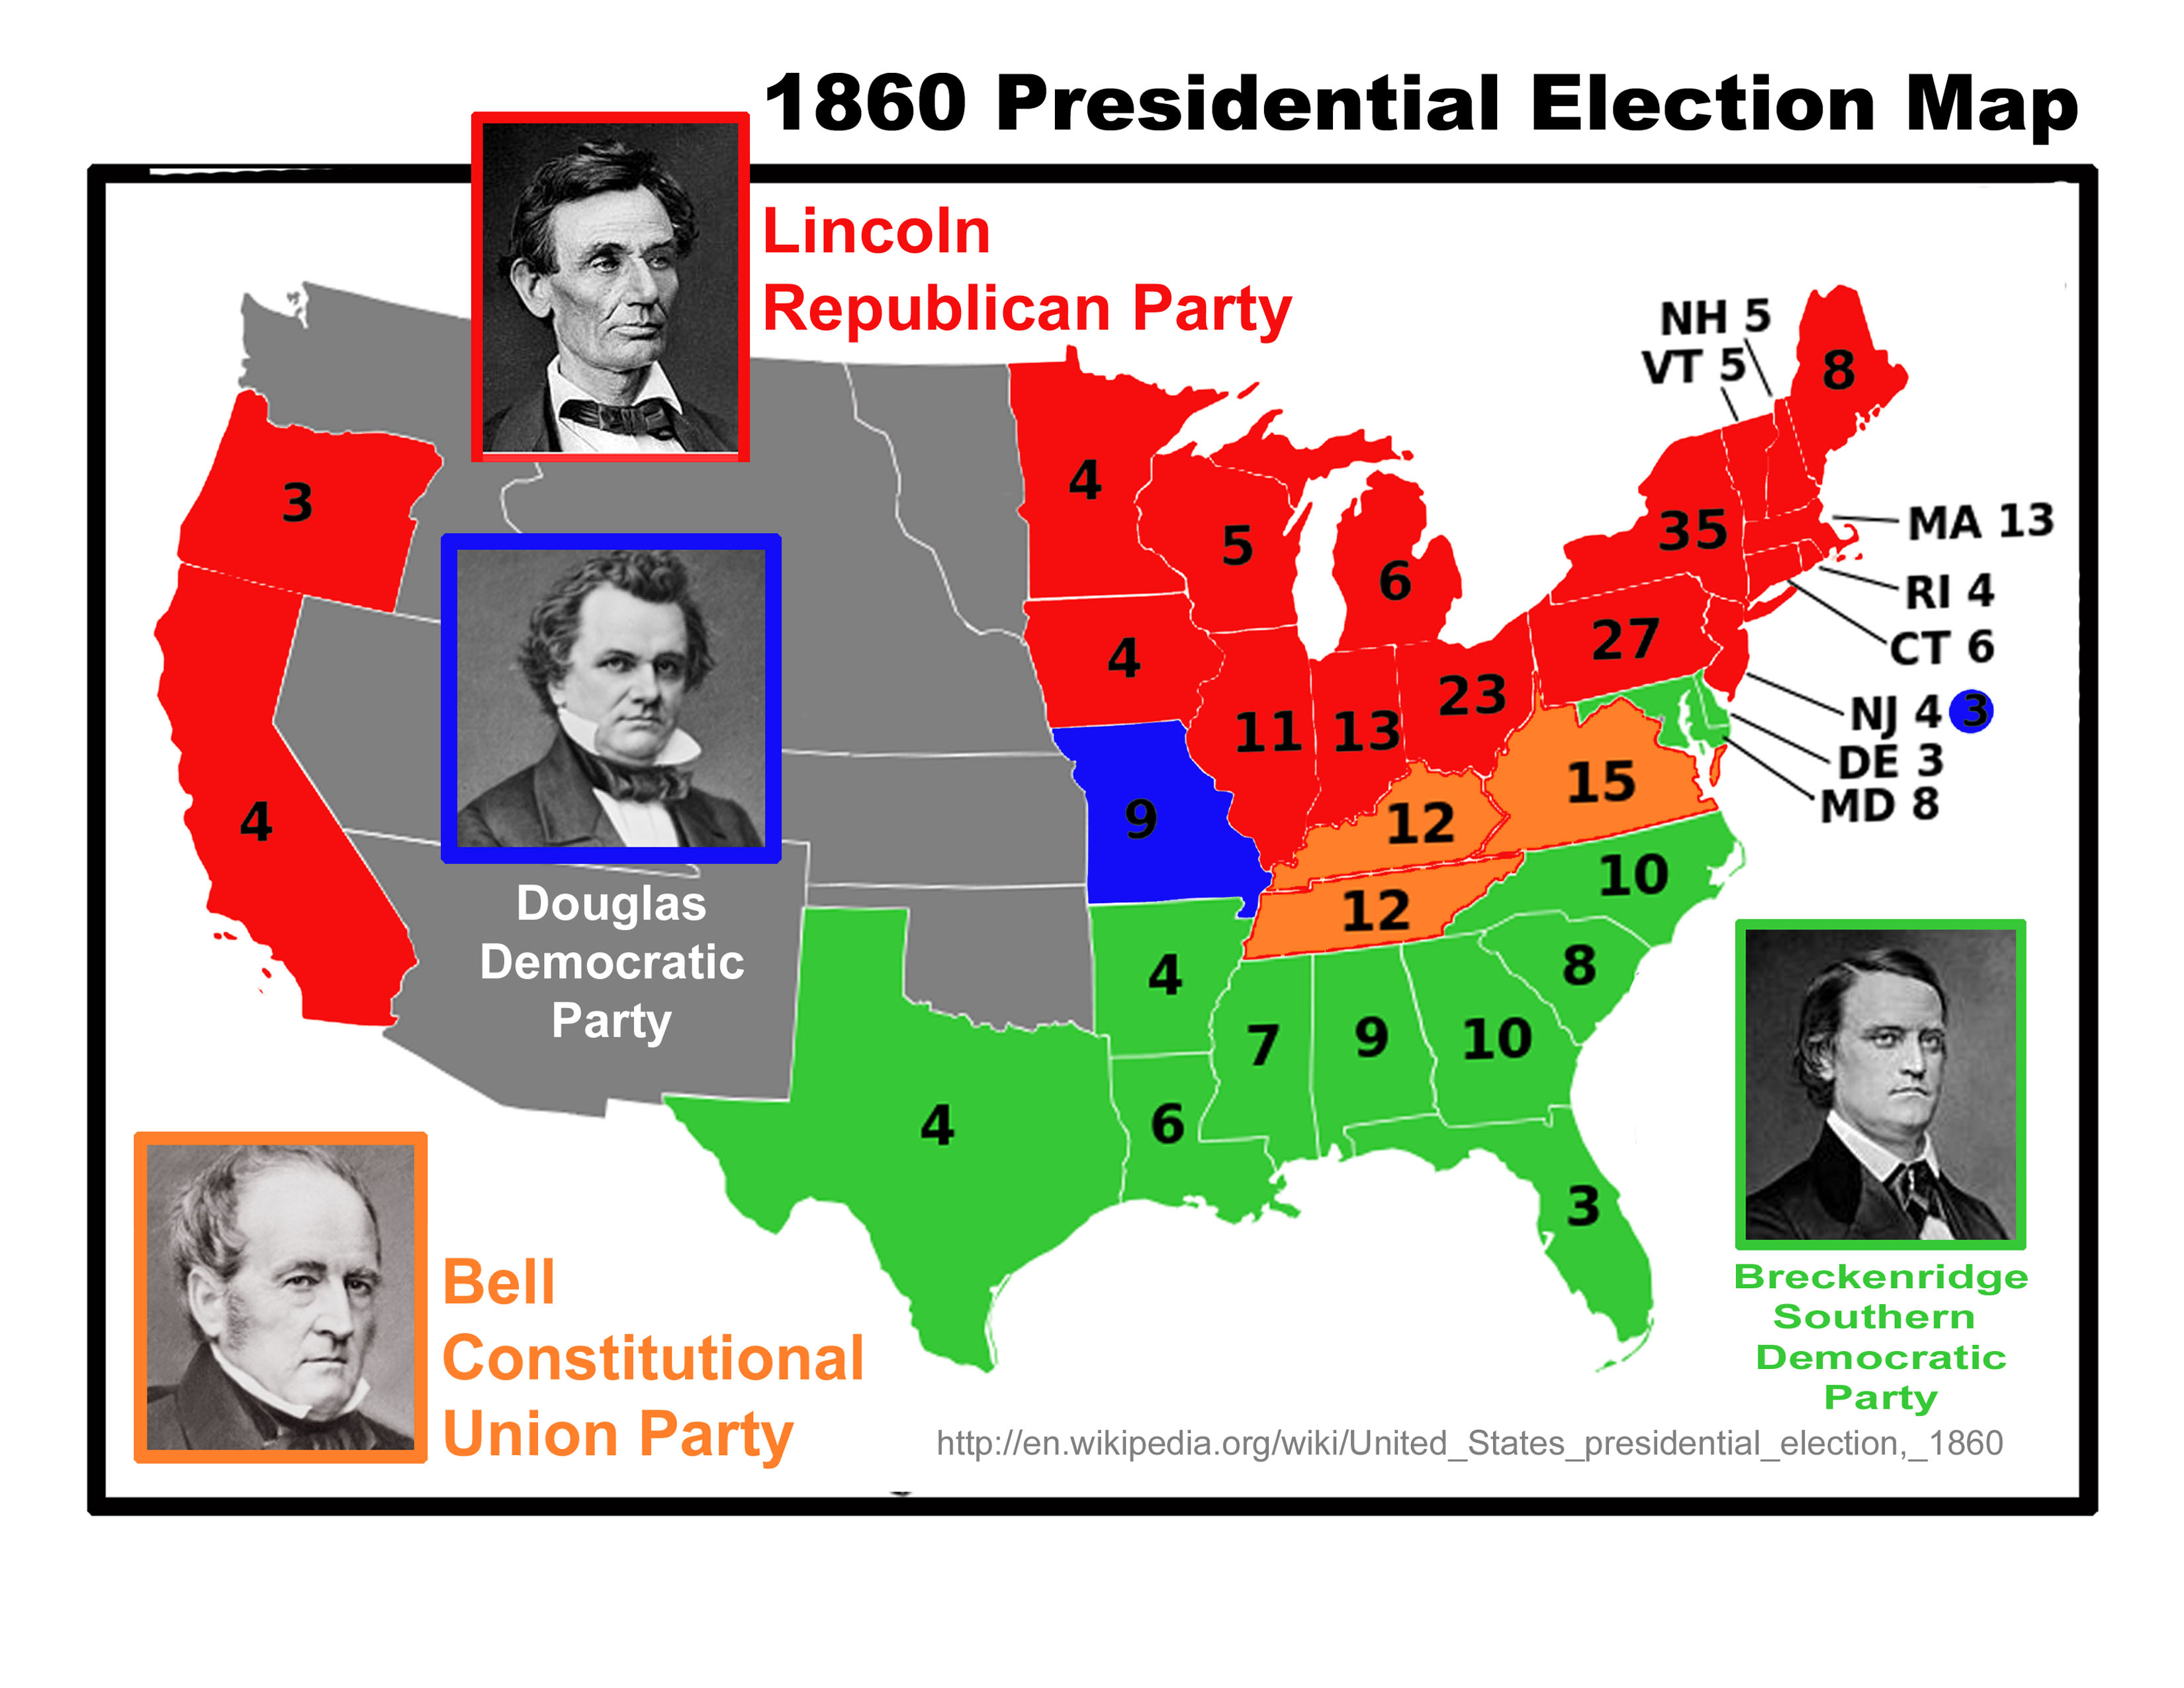 1860-presidential-election-map.jpg